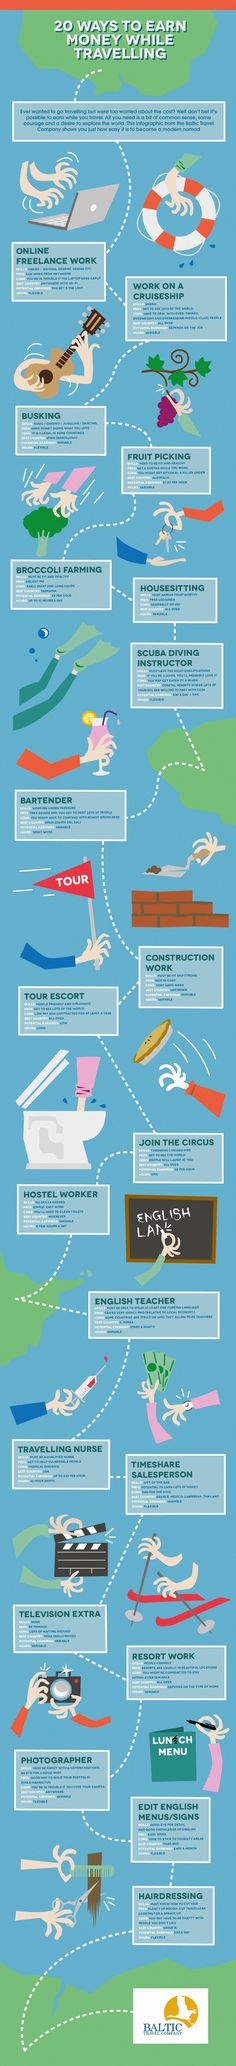 20 Ways to Earn While Traveling #infographic #Travel